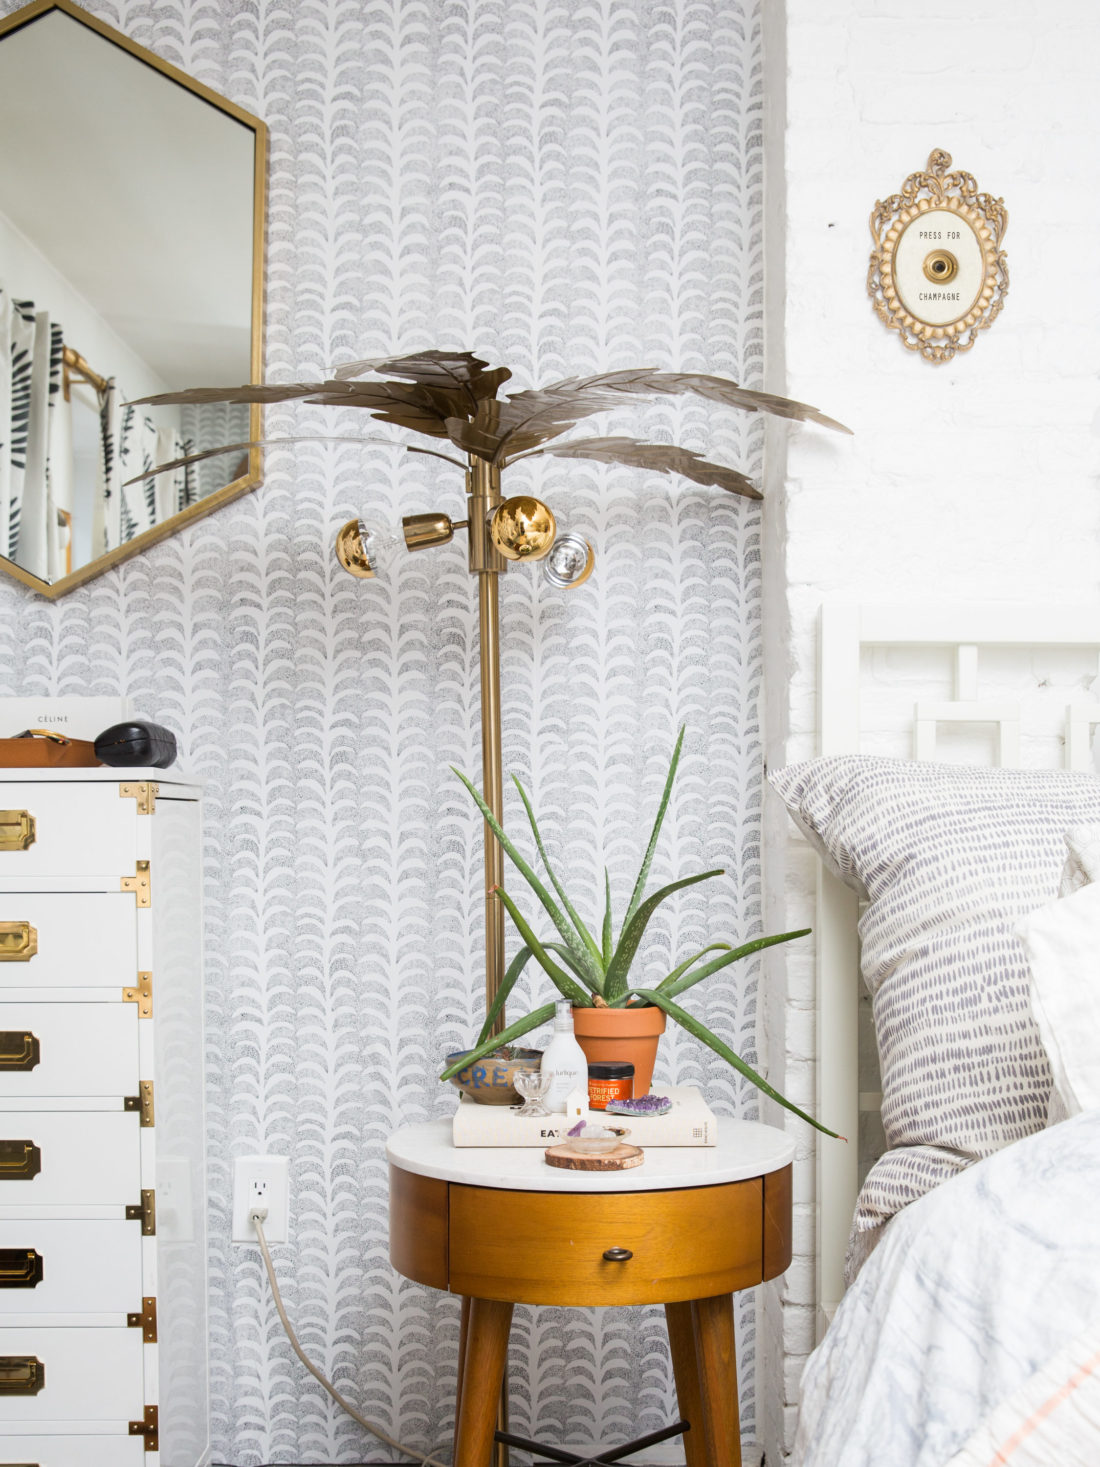 Brooklyn Apartment Tour {Video + LINKS} - The Stripe